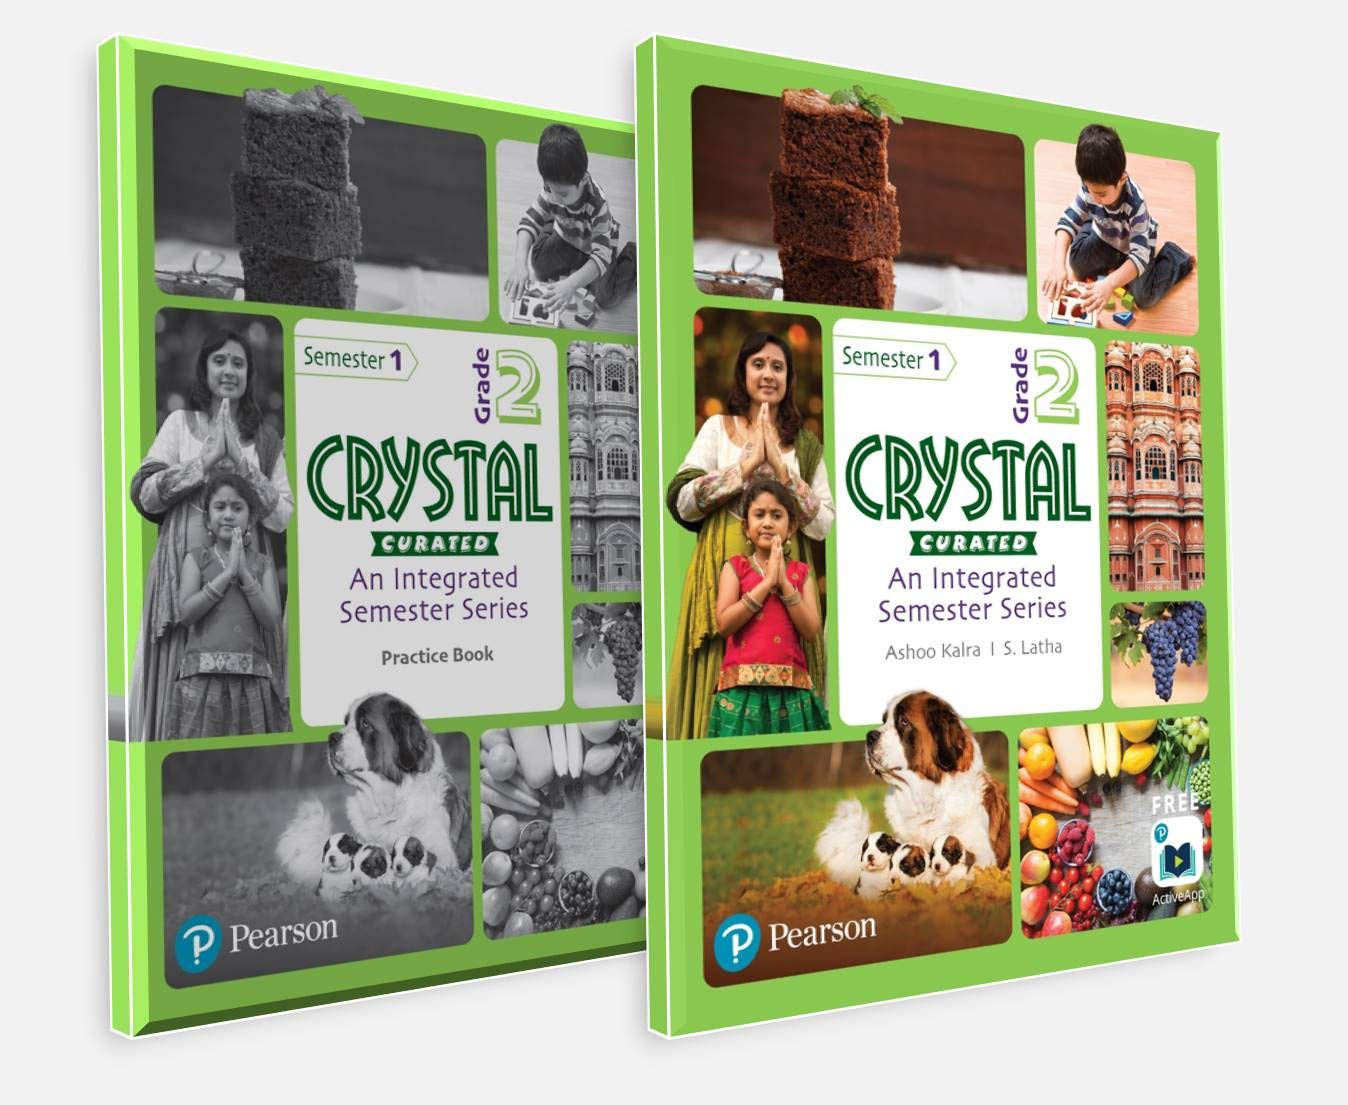 Crystal Semester 1 Integrated Semester Series | Course Book